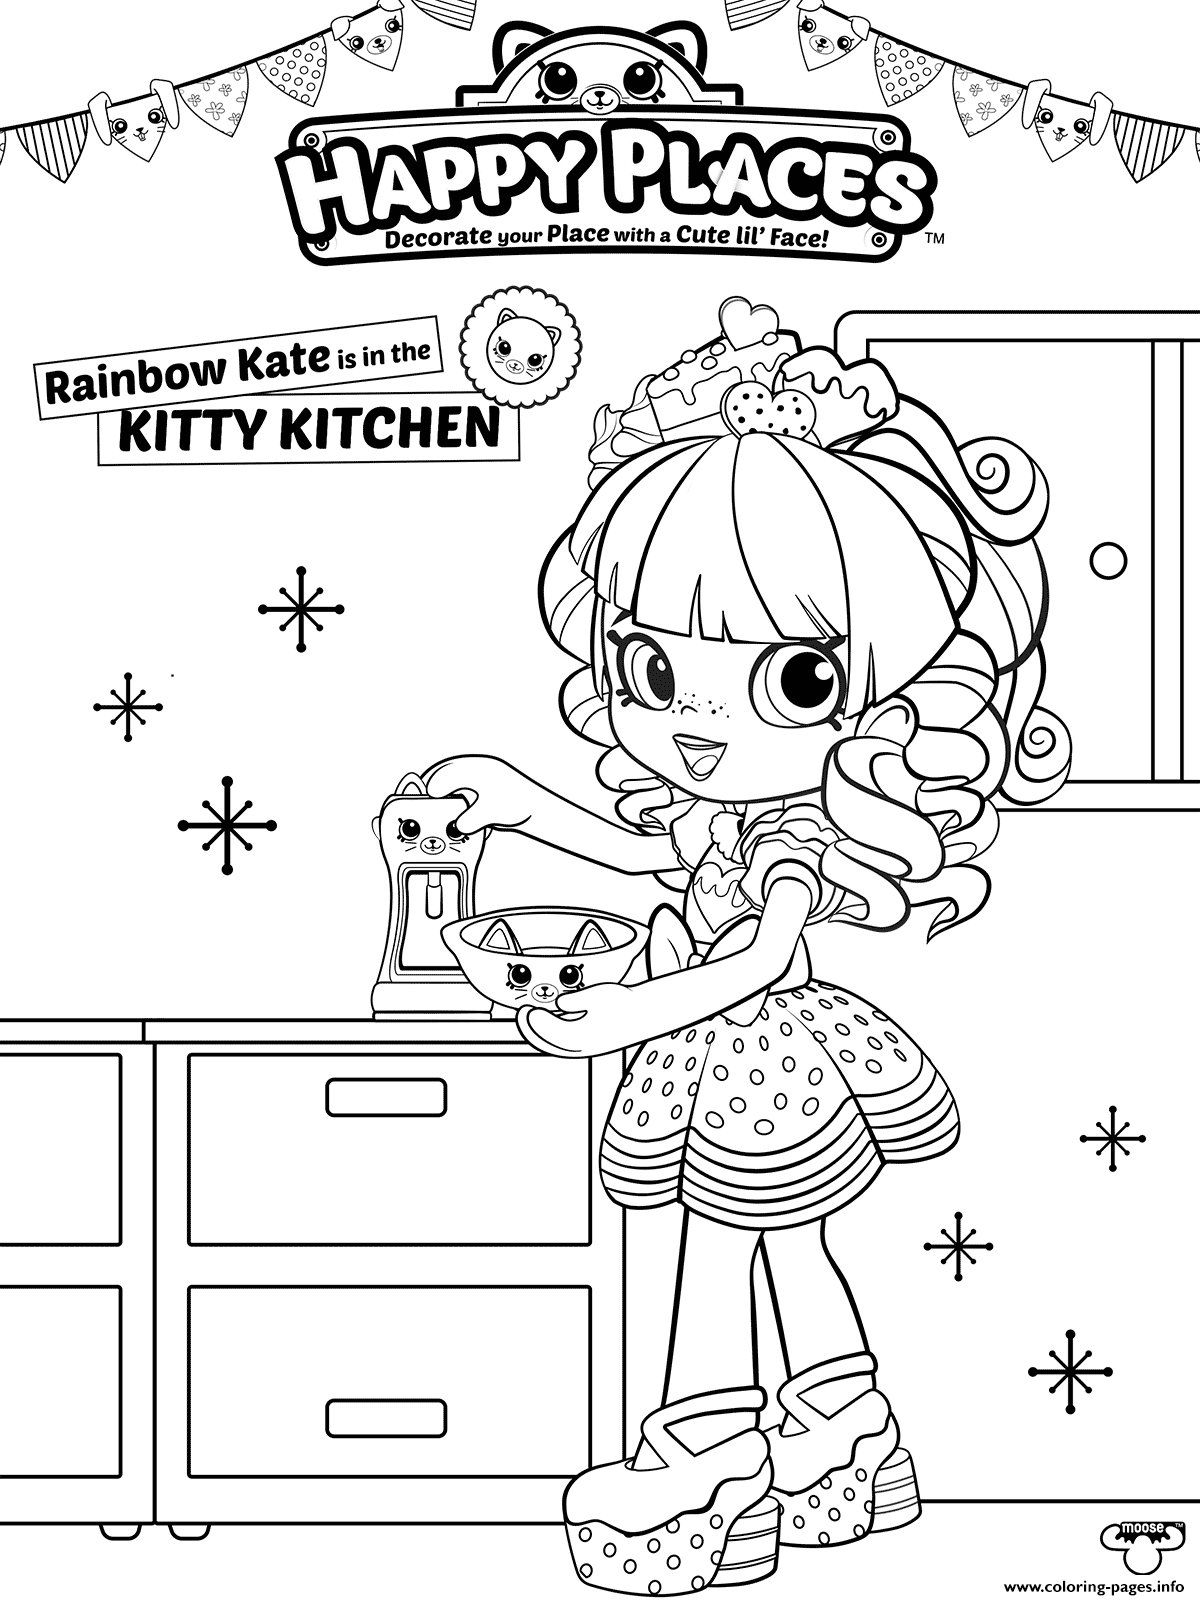 Shopkins coloring pages to color online - Print Shopkins Happy Places Coloring Pages